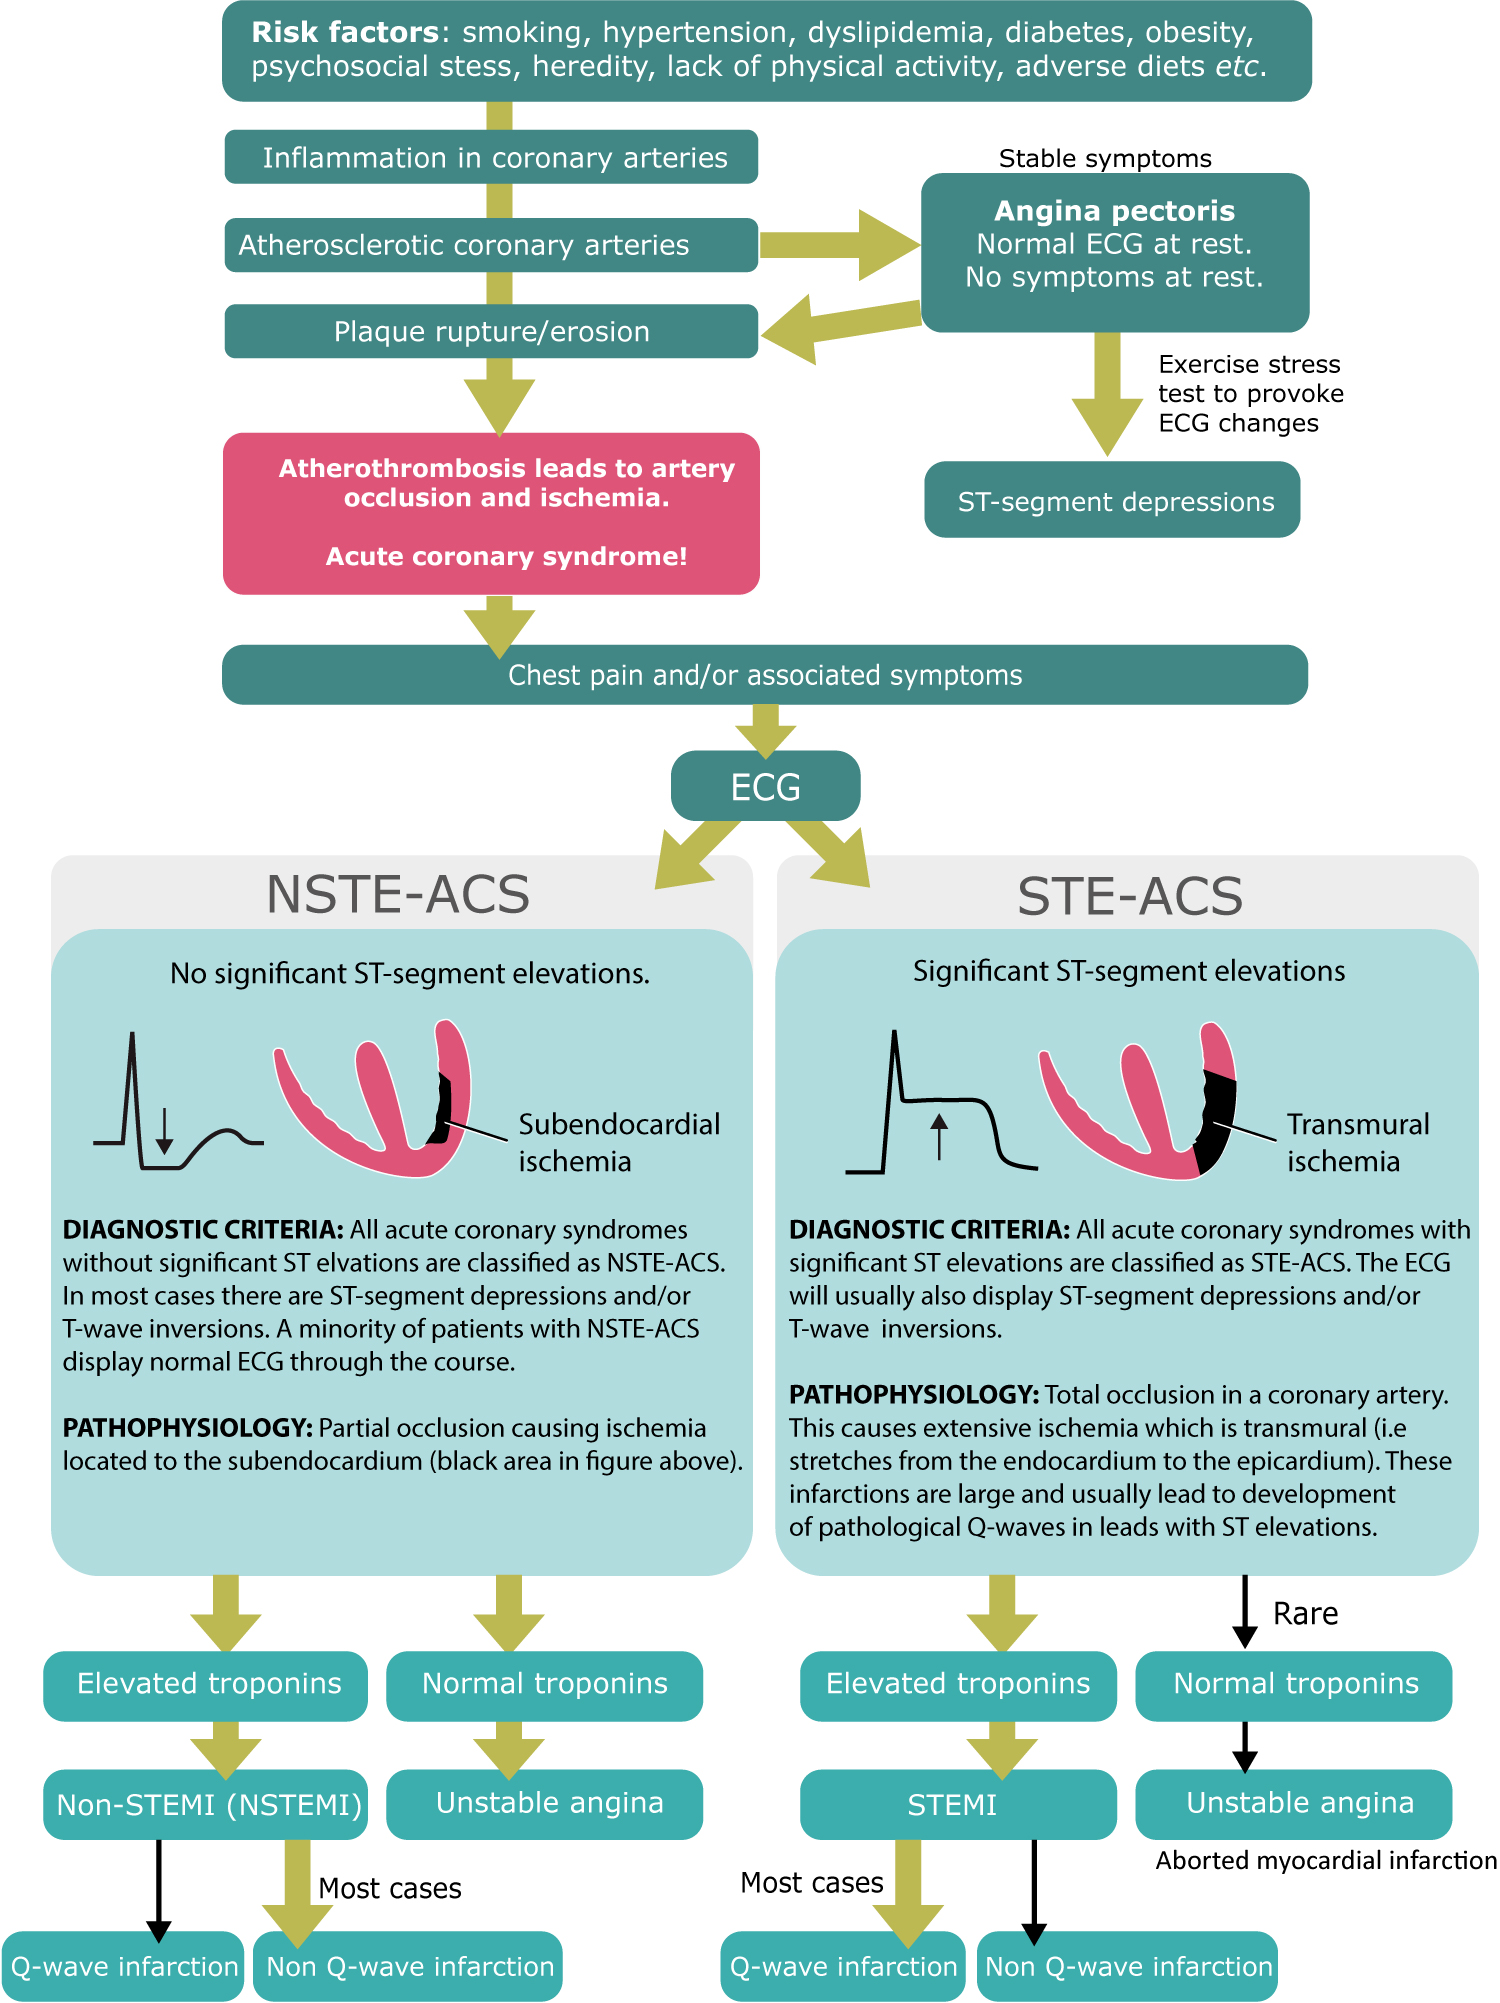 Figure 2. Classification of acute coronary syndromes into STE-ACS (STEMI, ST elevation myocardial infarction) and NSTE-ACS (Non STEMI and unstable angina [UA]).